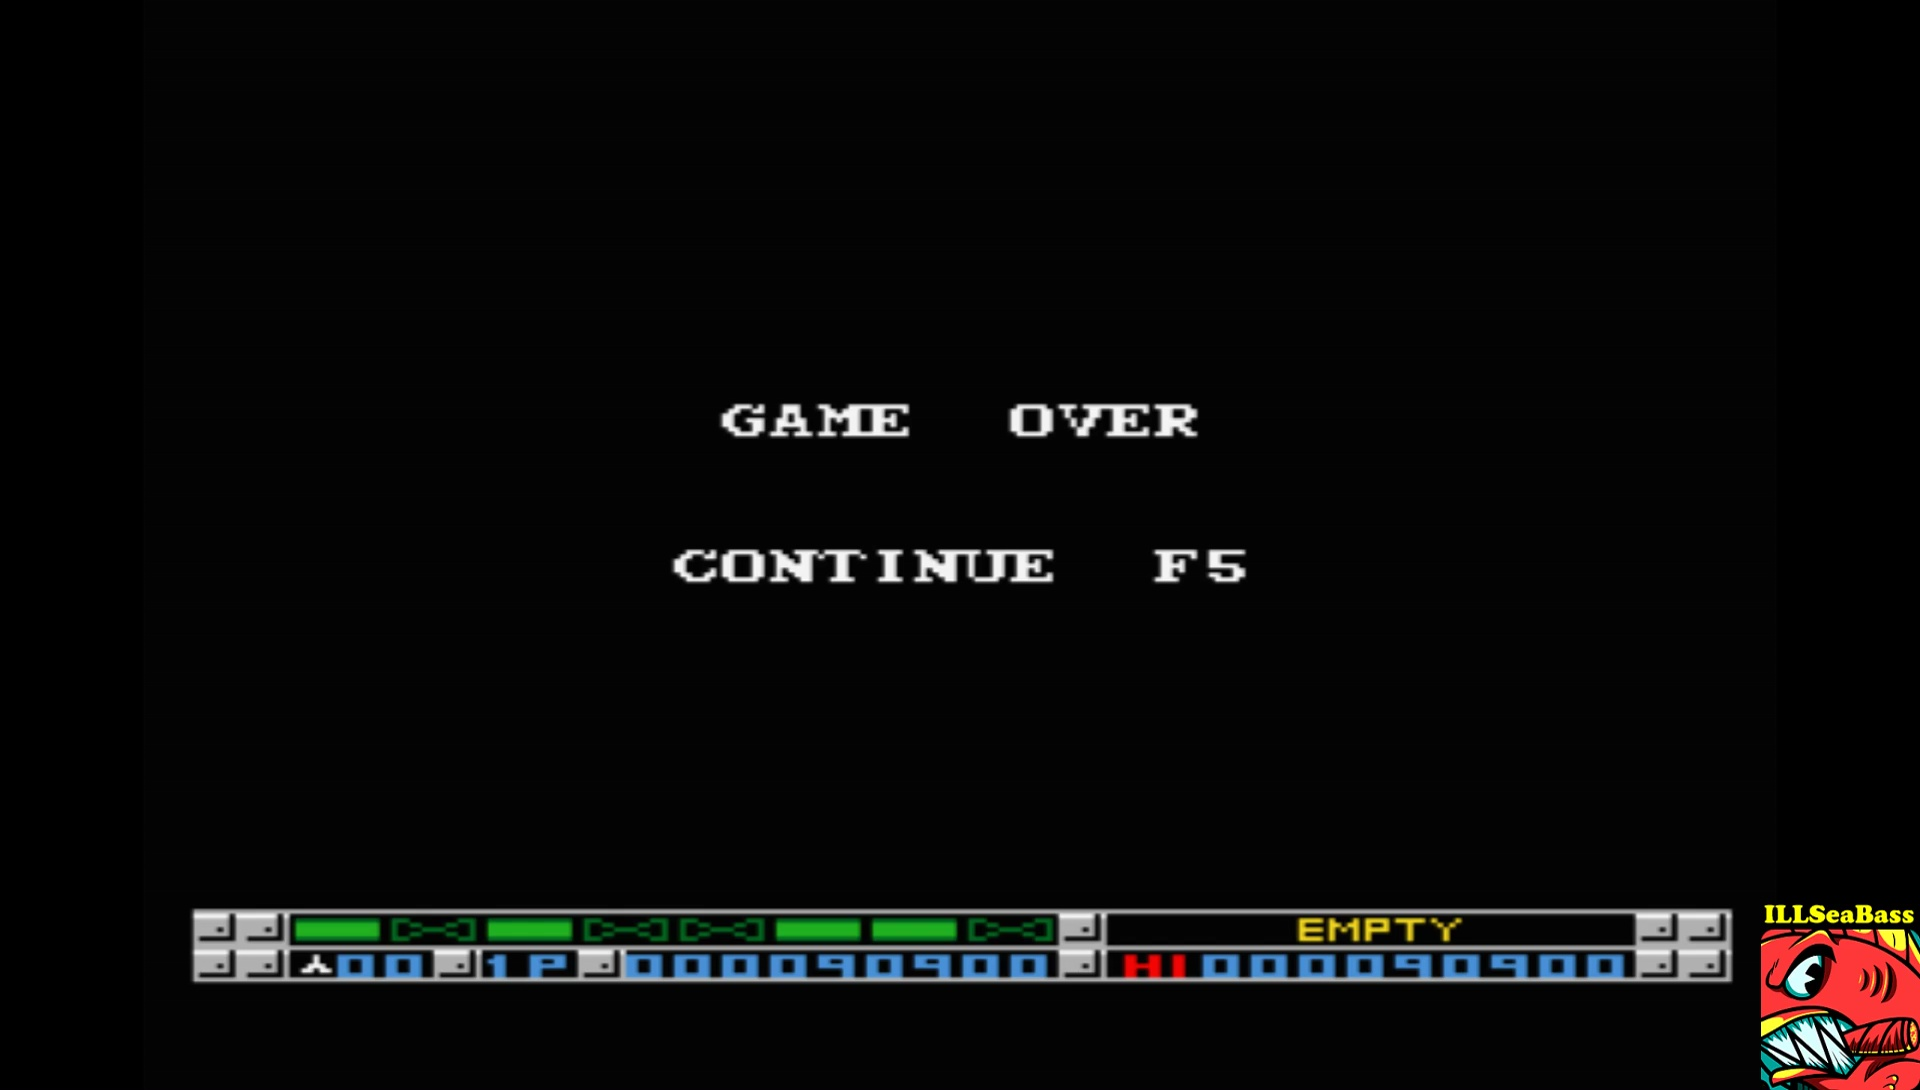 ILLSeaBass: Nemesis 3: The Eve Of Destruction (MSX Emulated) 90,900 points on 2017-07-31 20:23:38